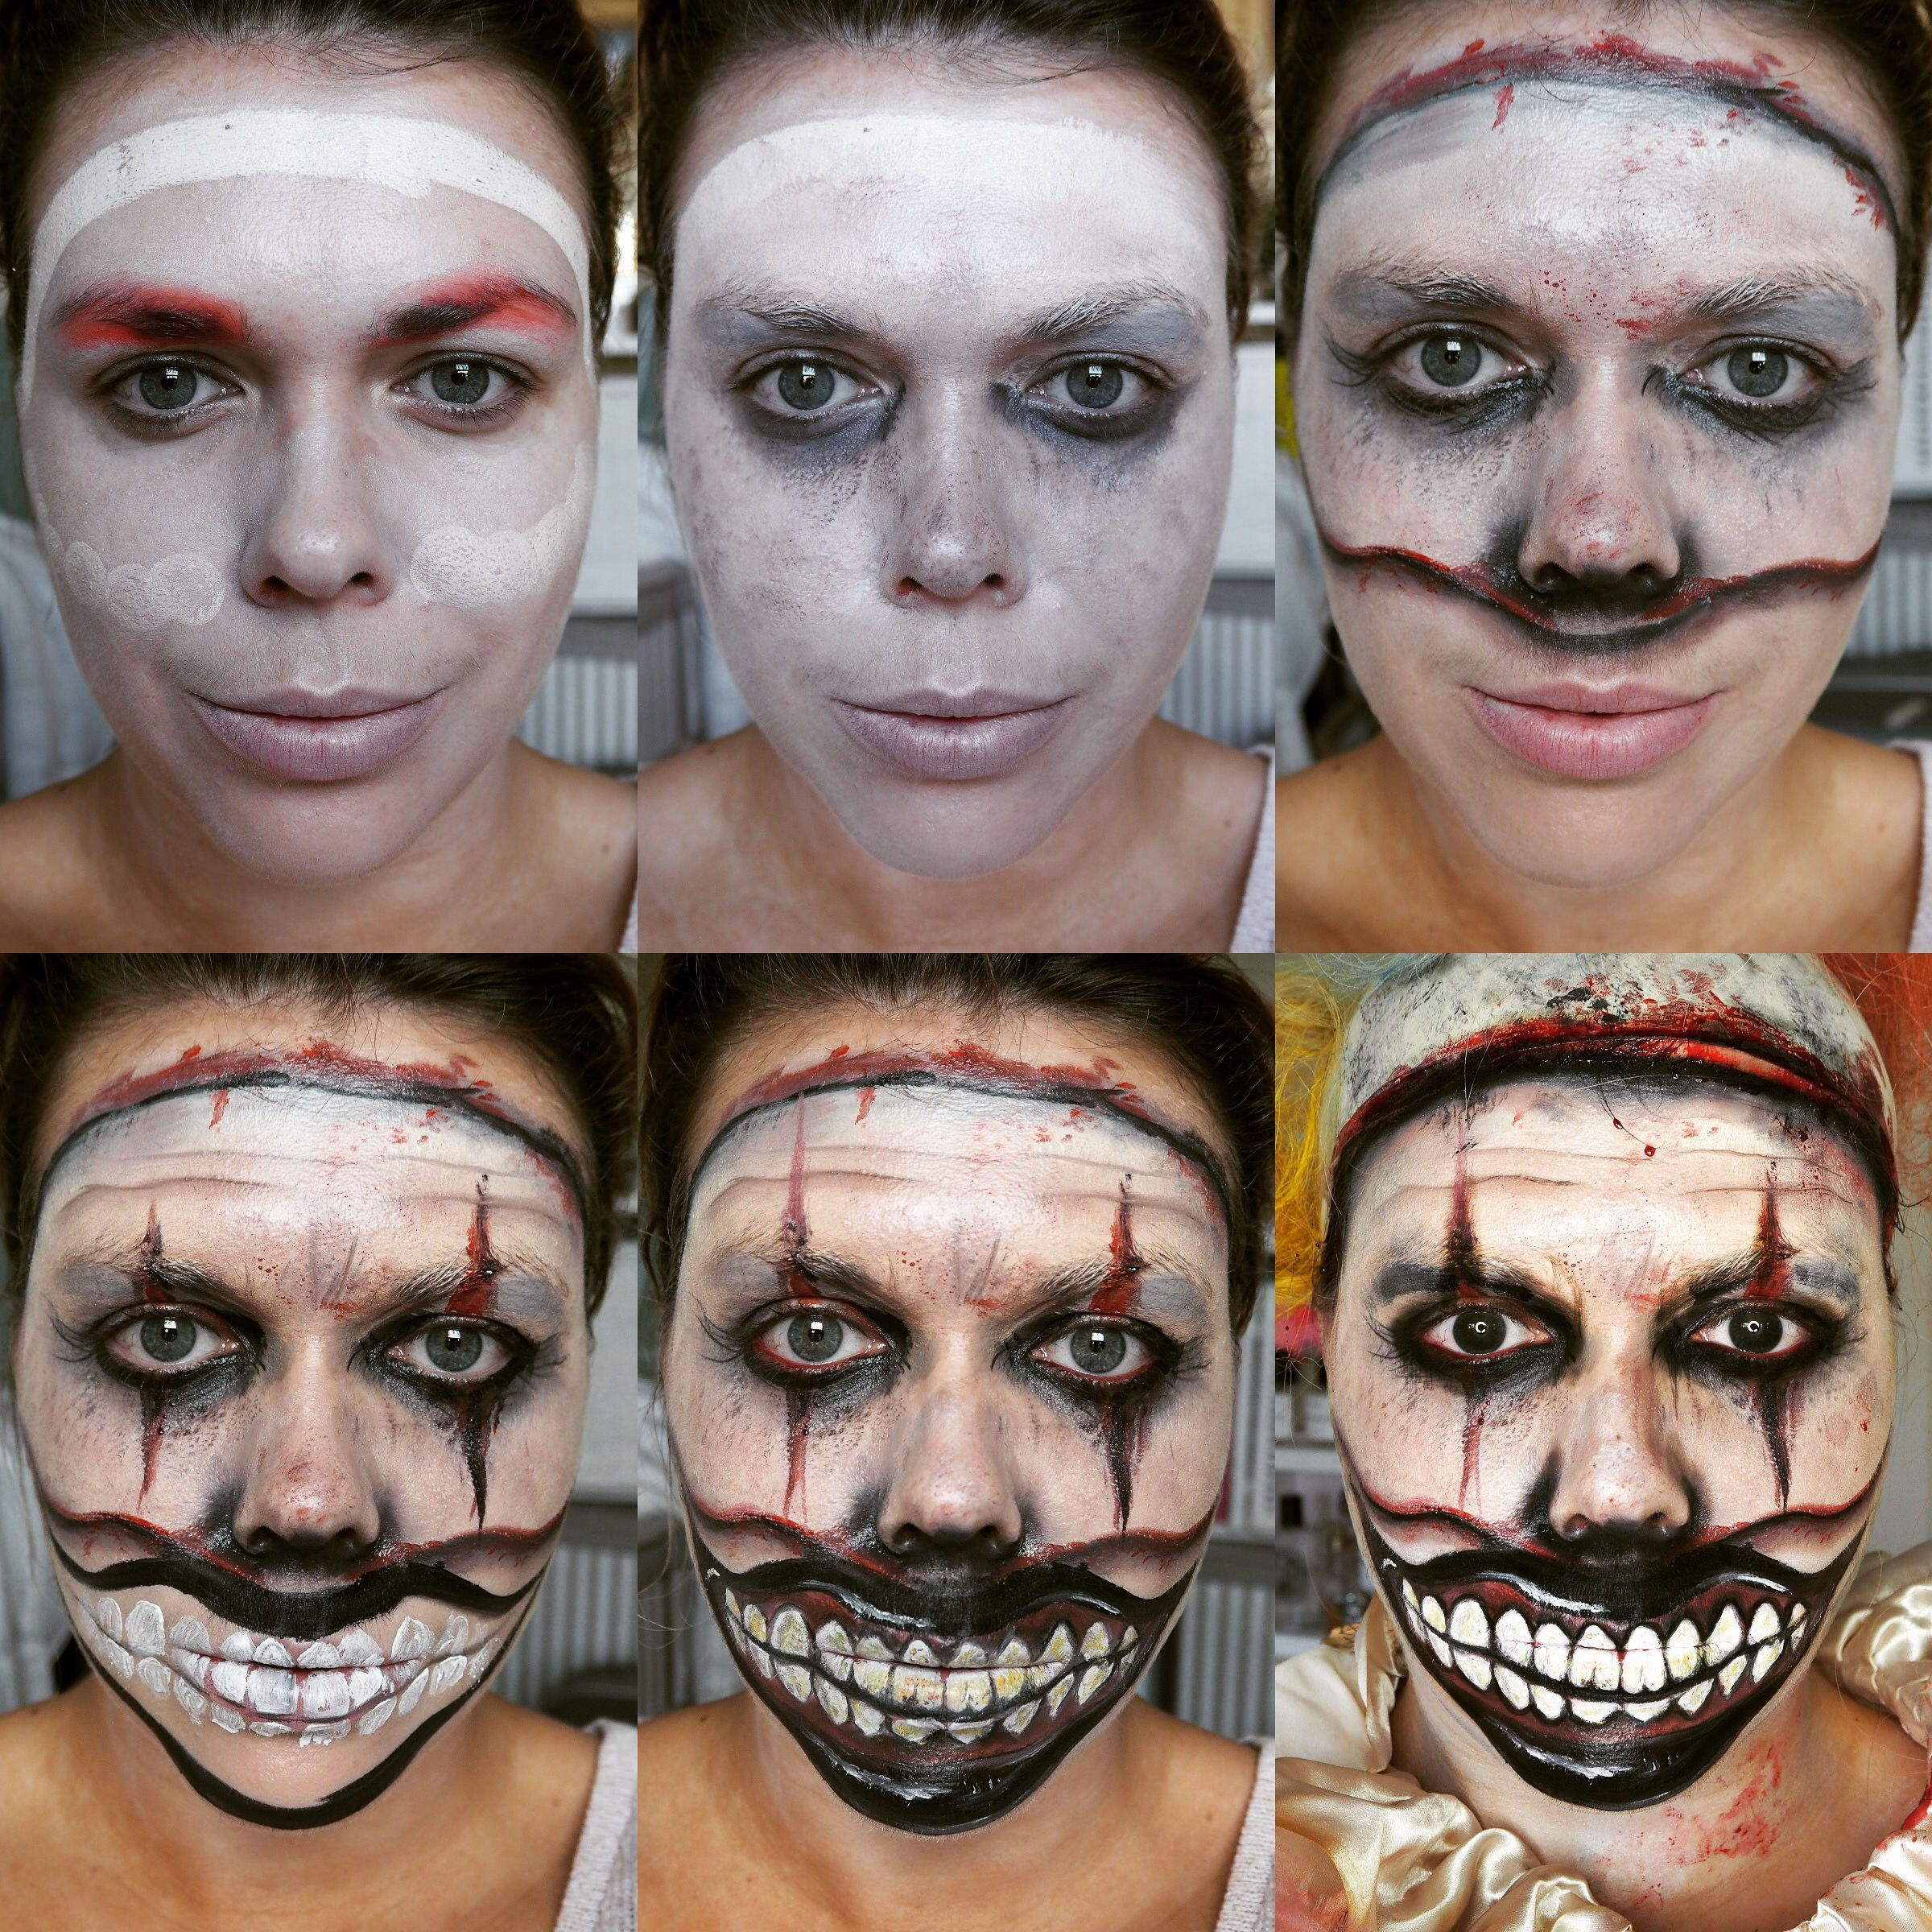 Halloween makeup tutorial : Twisty the clown from American Horror Story.